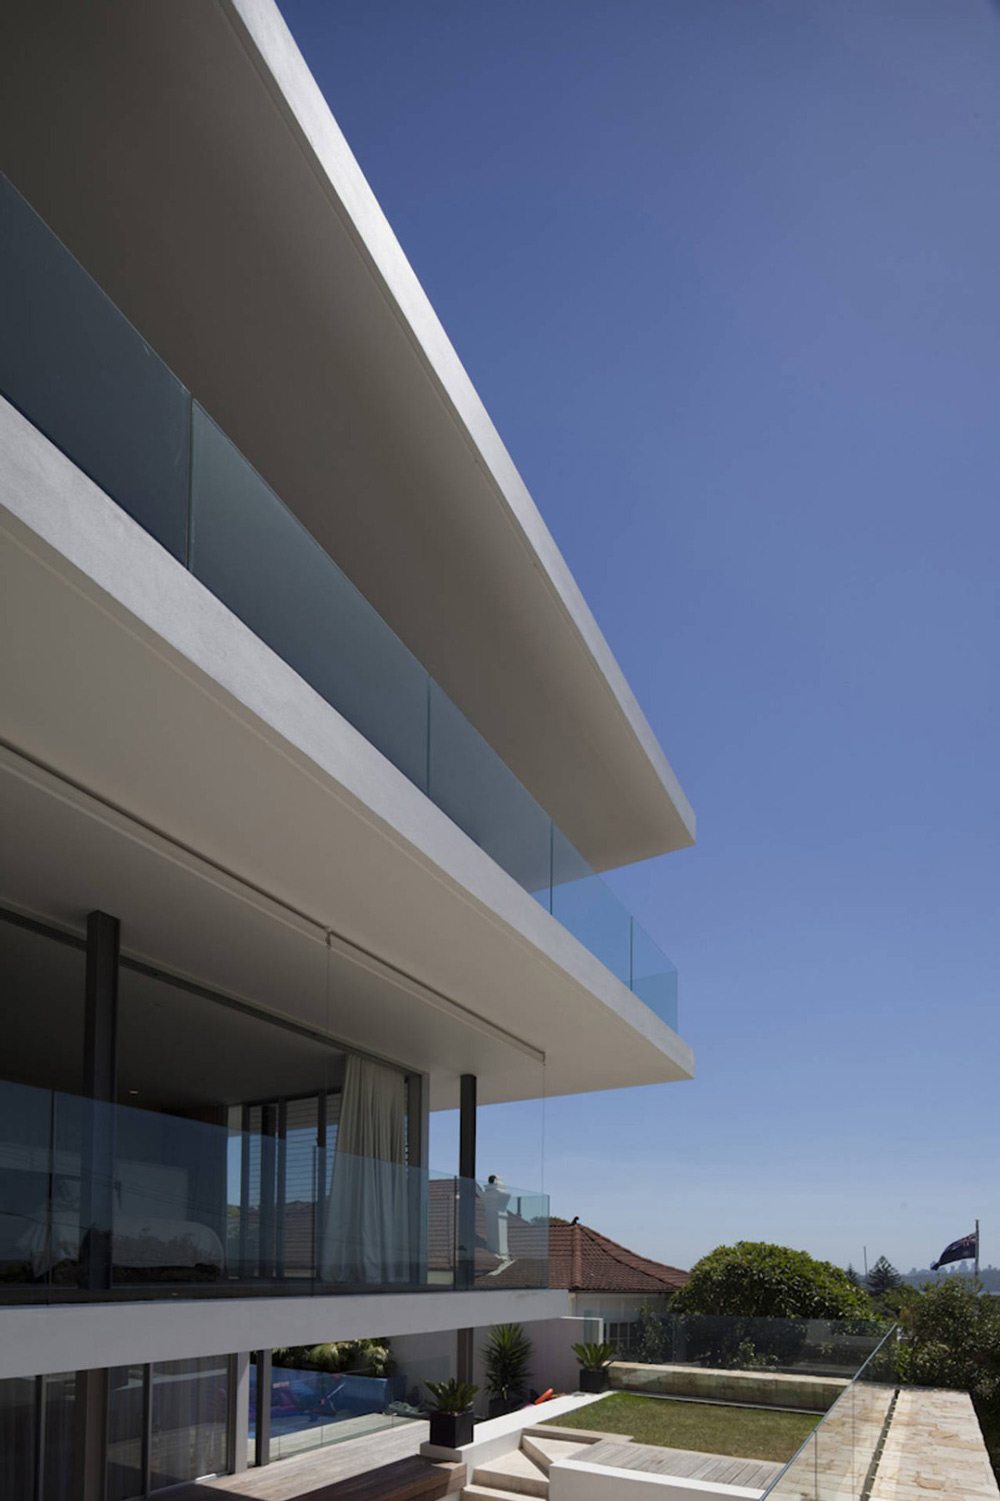 Glass Balustrading, Vaucluse House in Sydney, Australia by MPR Design Group